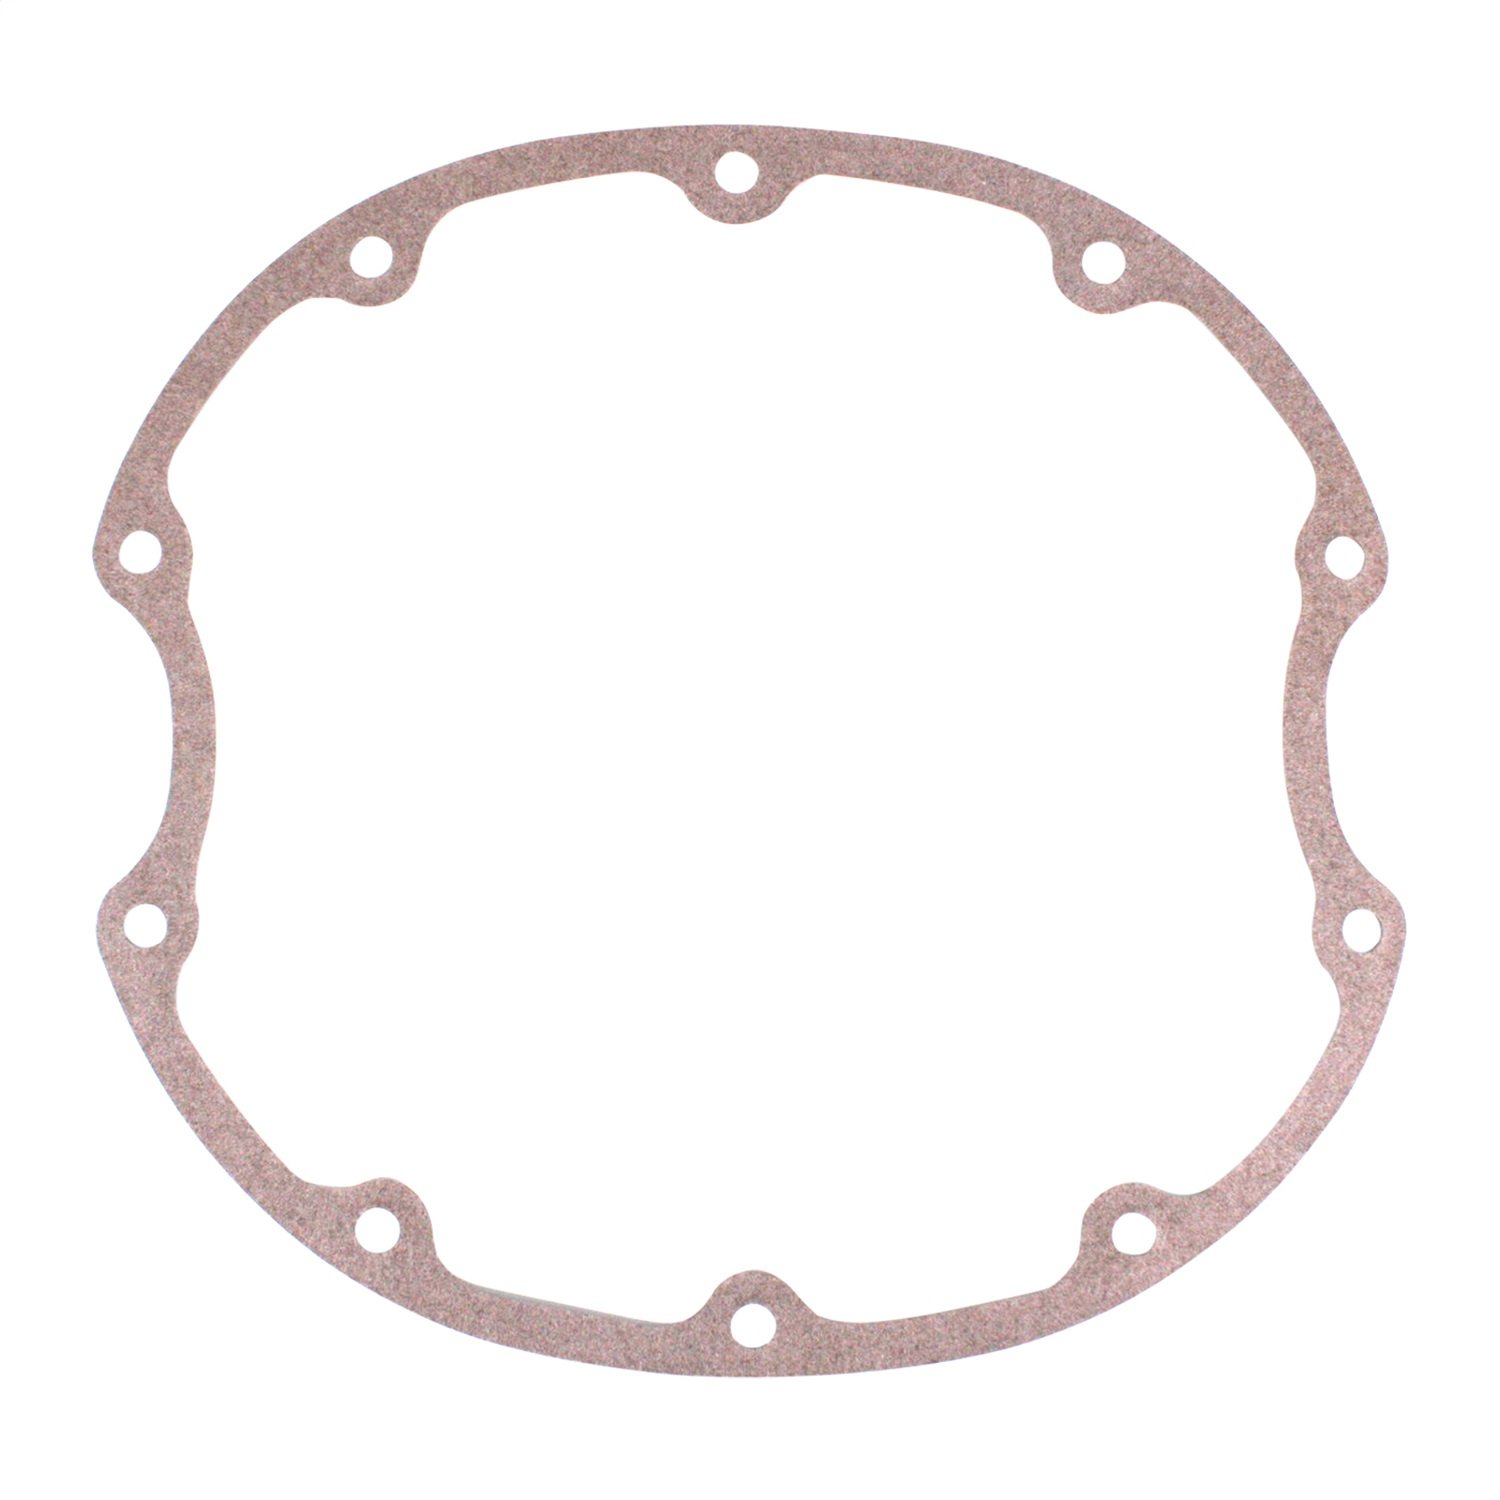 Yukon (YCGGM8.2BOP-10) Cover Gasket for Buick/Oldsmobile/Pontiac 8.2'' Differential by Yukon Gear